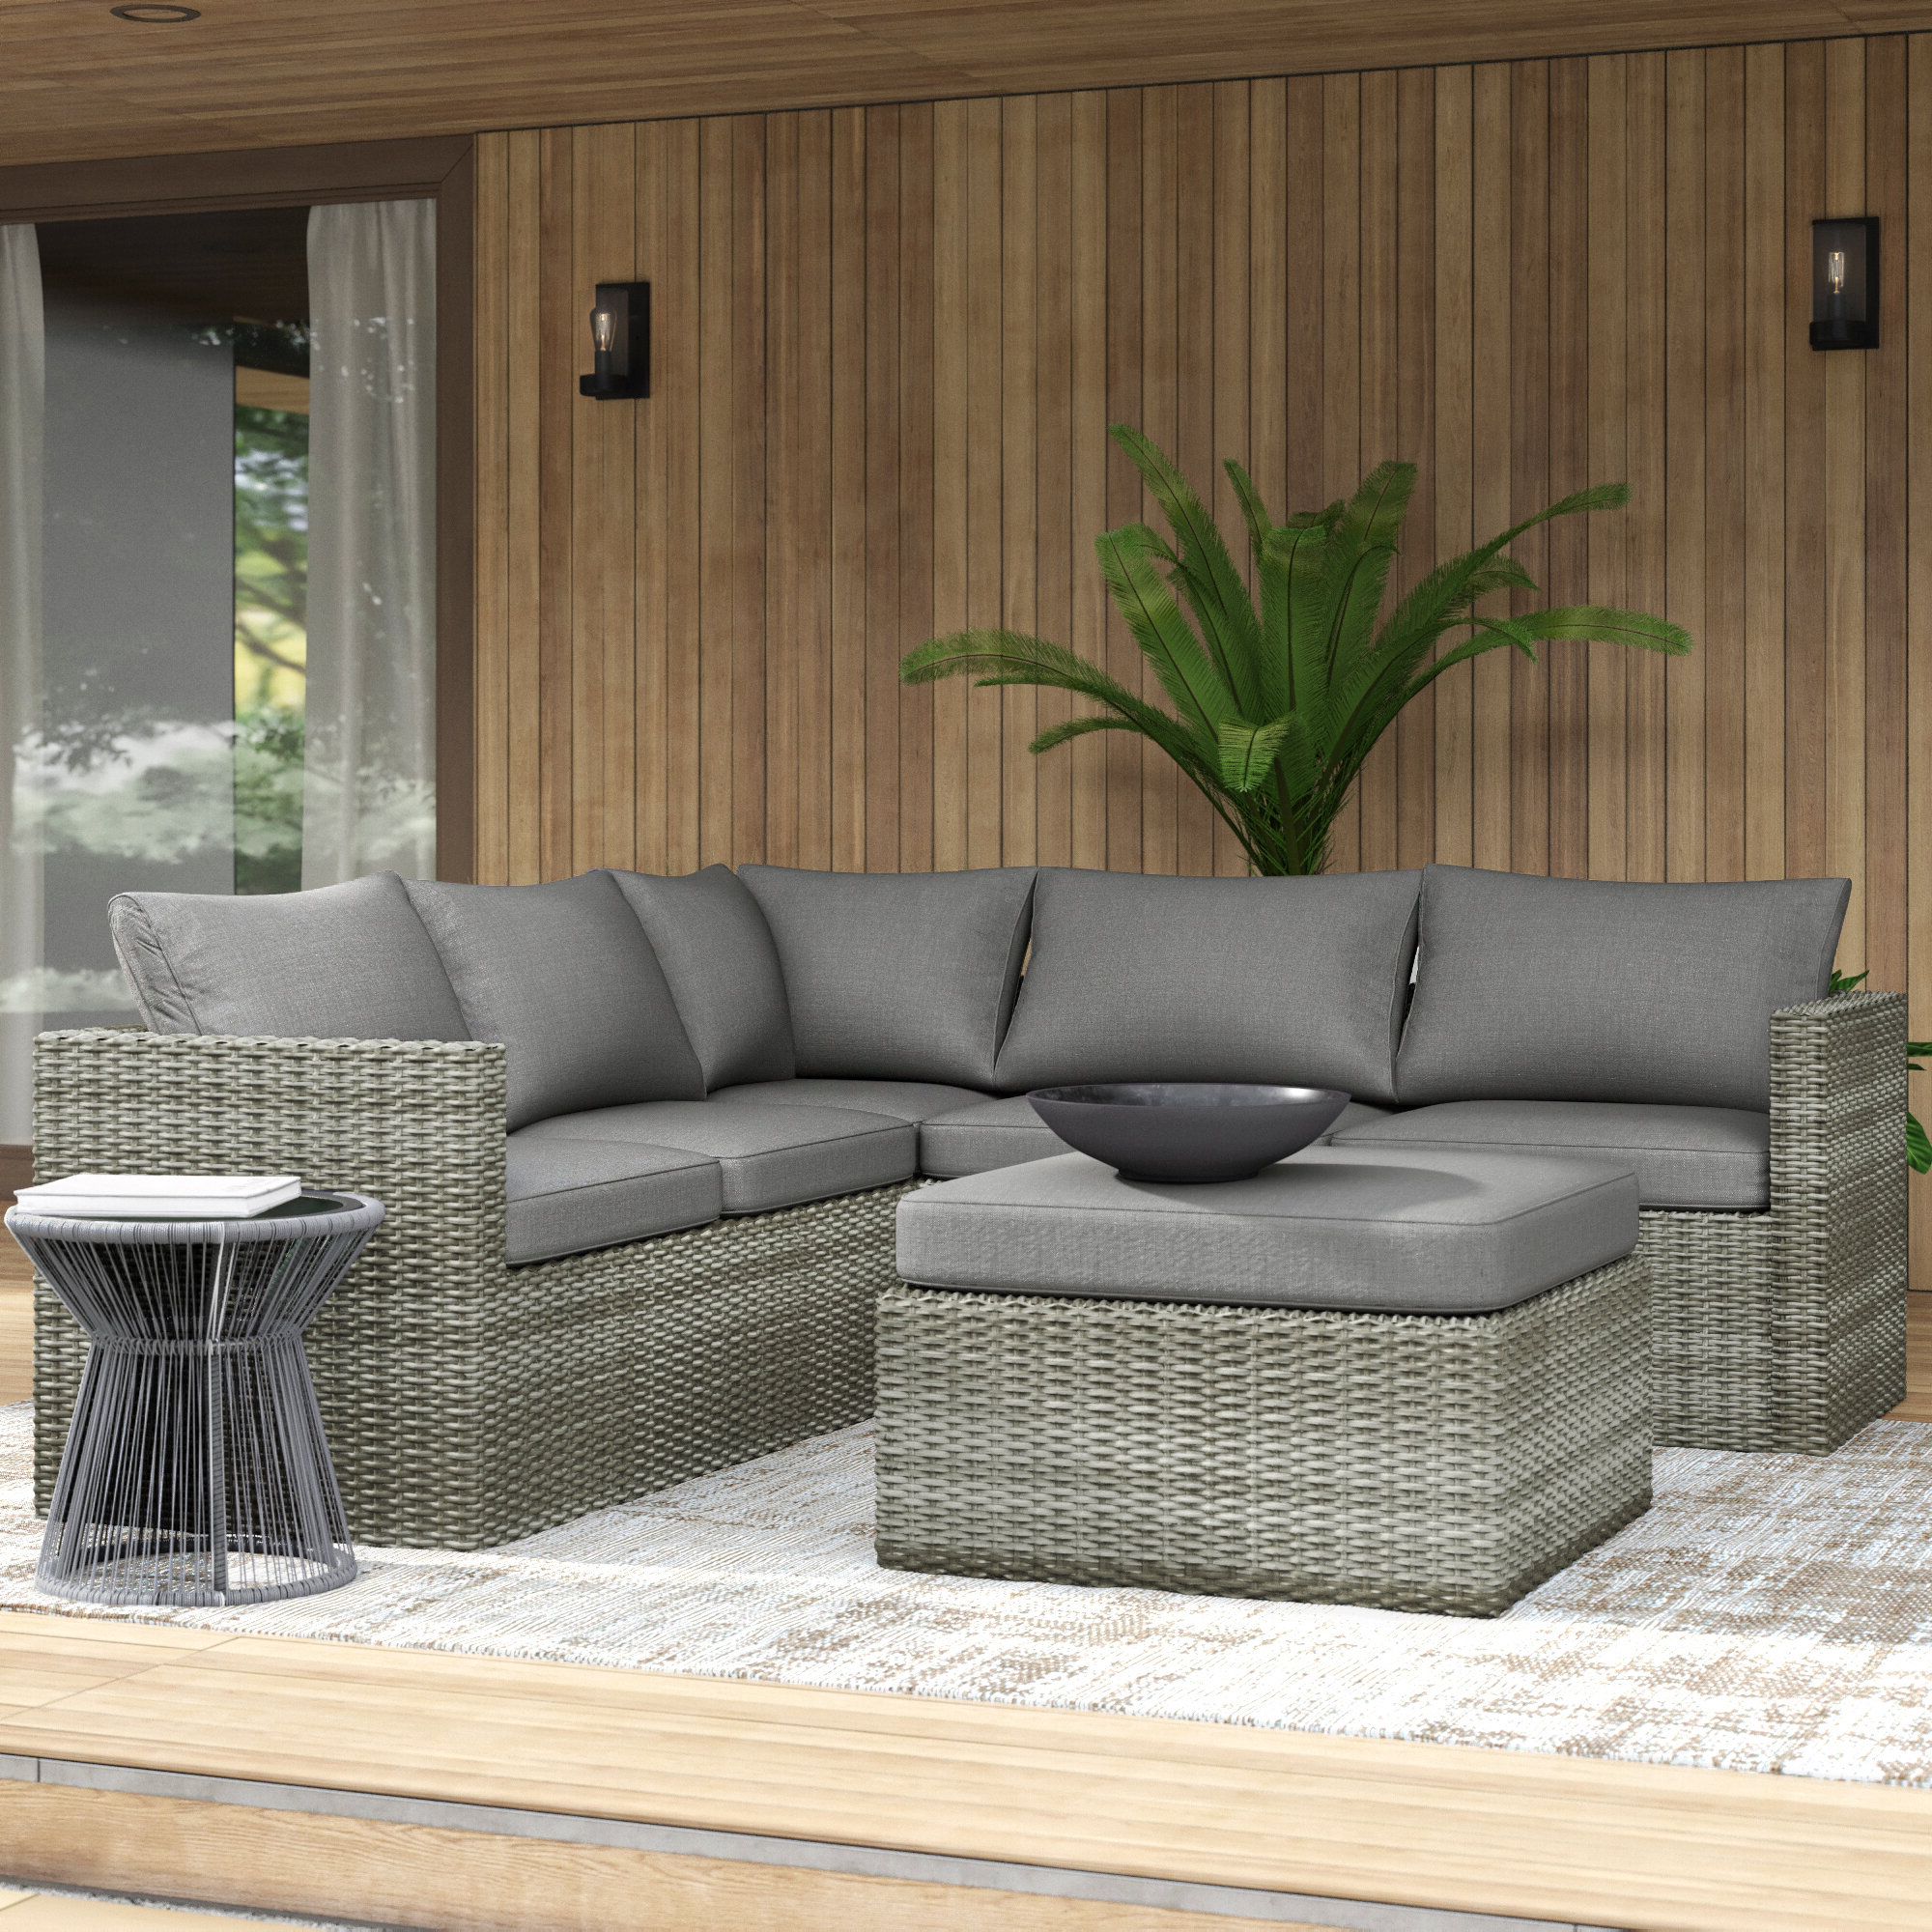 Purington Circular Patio Sectionals With Cushions In Well Known Lorentzen Patio Sectional With Cushions (View 12 of 20)